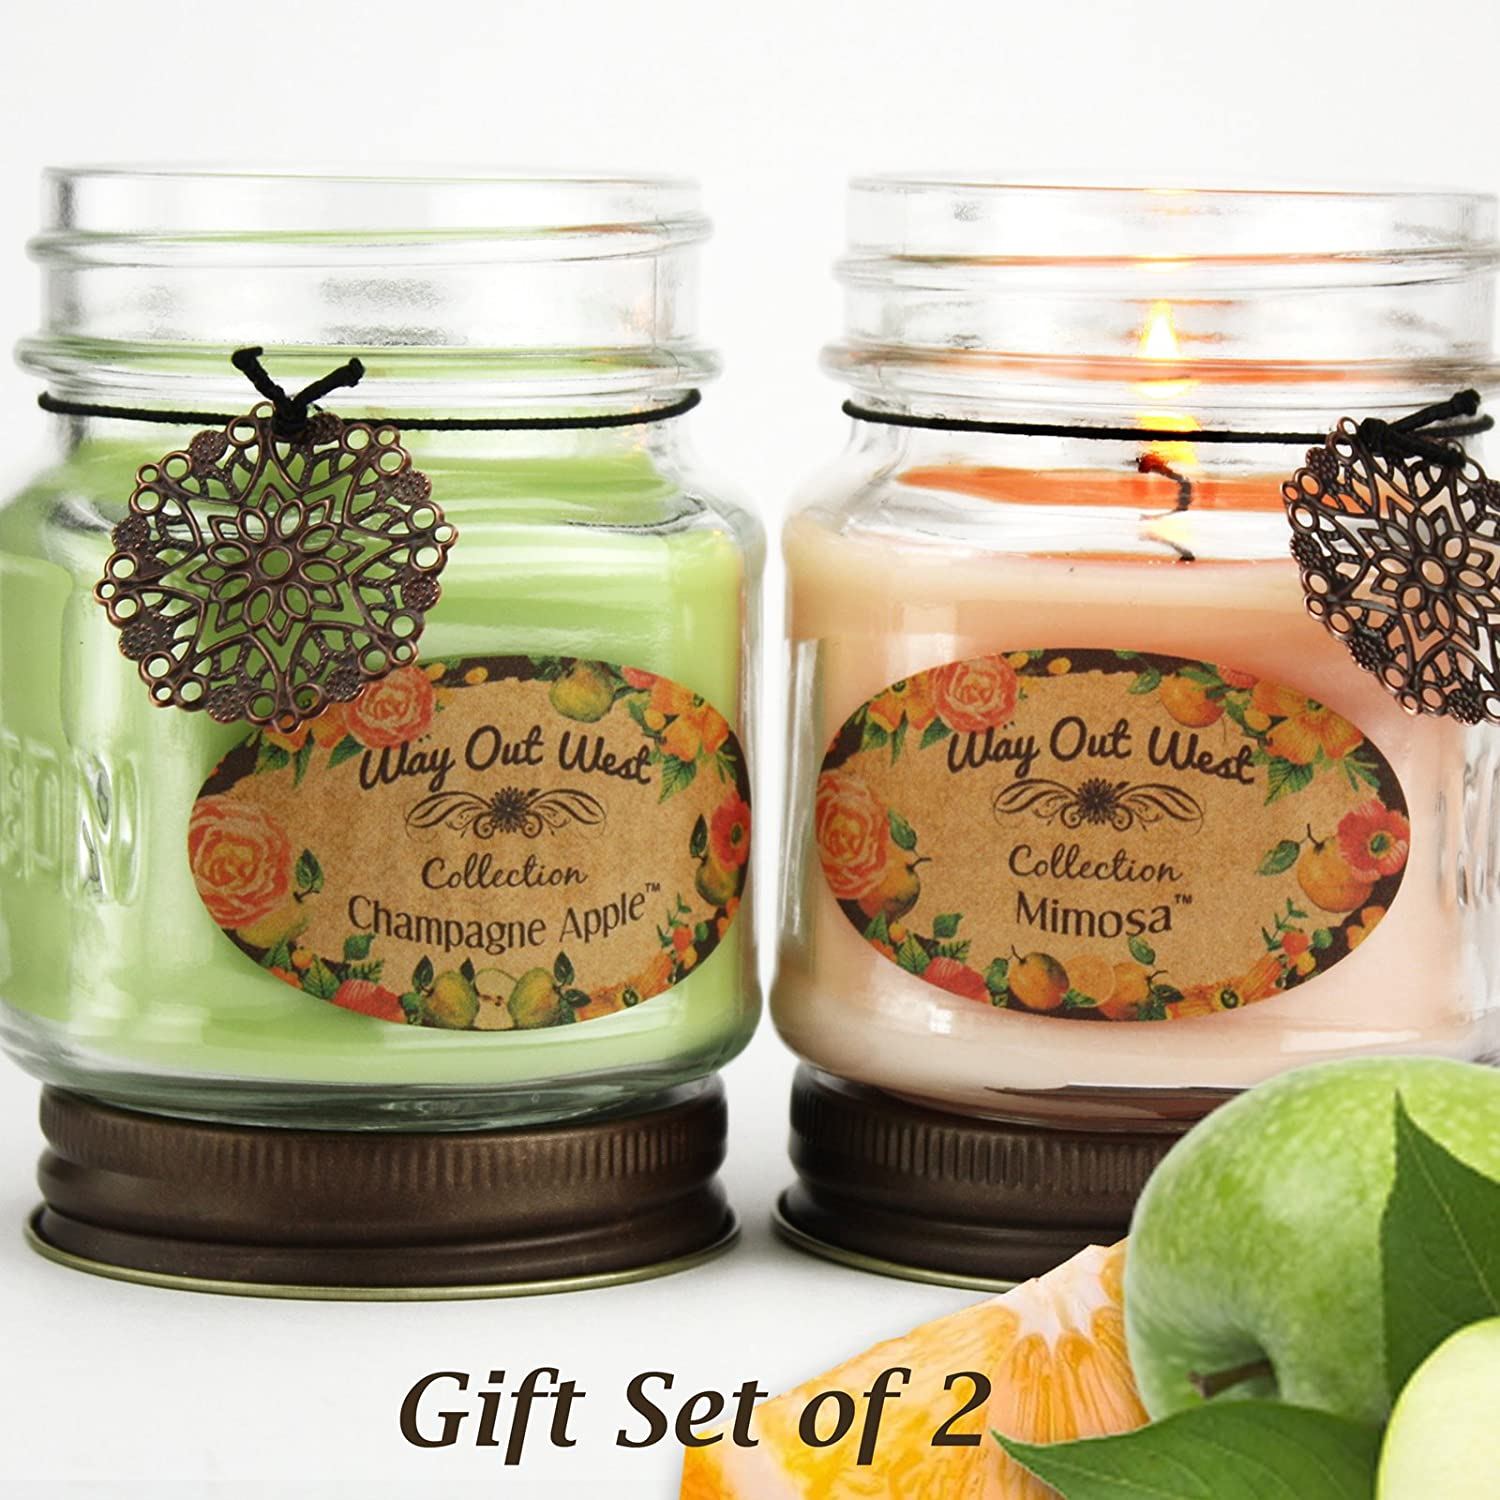 Jar Candles Scented Set of 2 -Mother's Day Gift for Her -Long Lasting, Amazing Spring Summer Scents -Fragranced with Mimosa & Champagne Apple -Candles say I love you to your Wife-Mom, Daughter, Friend